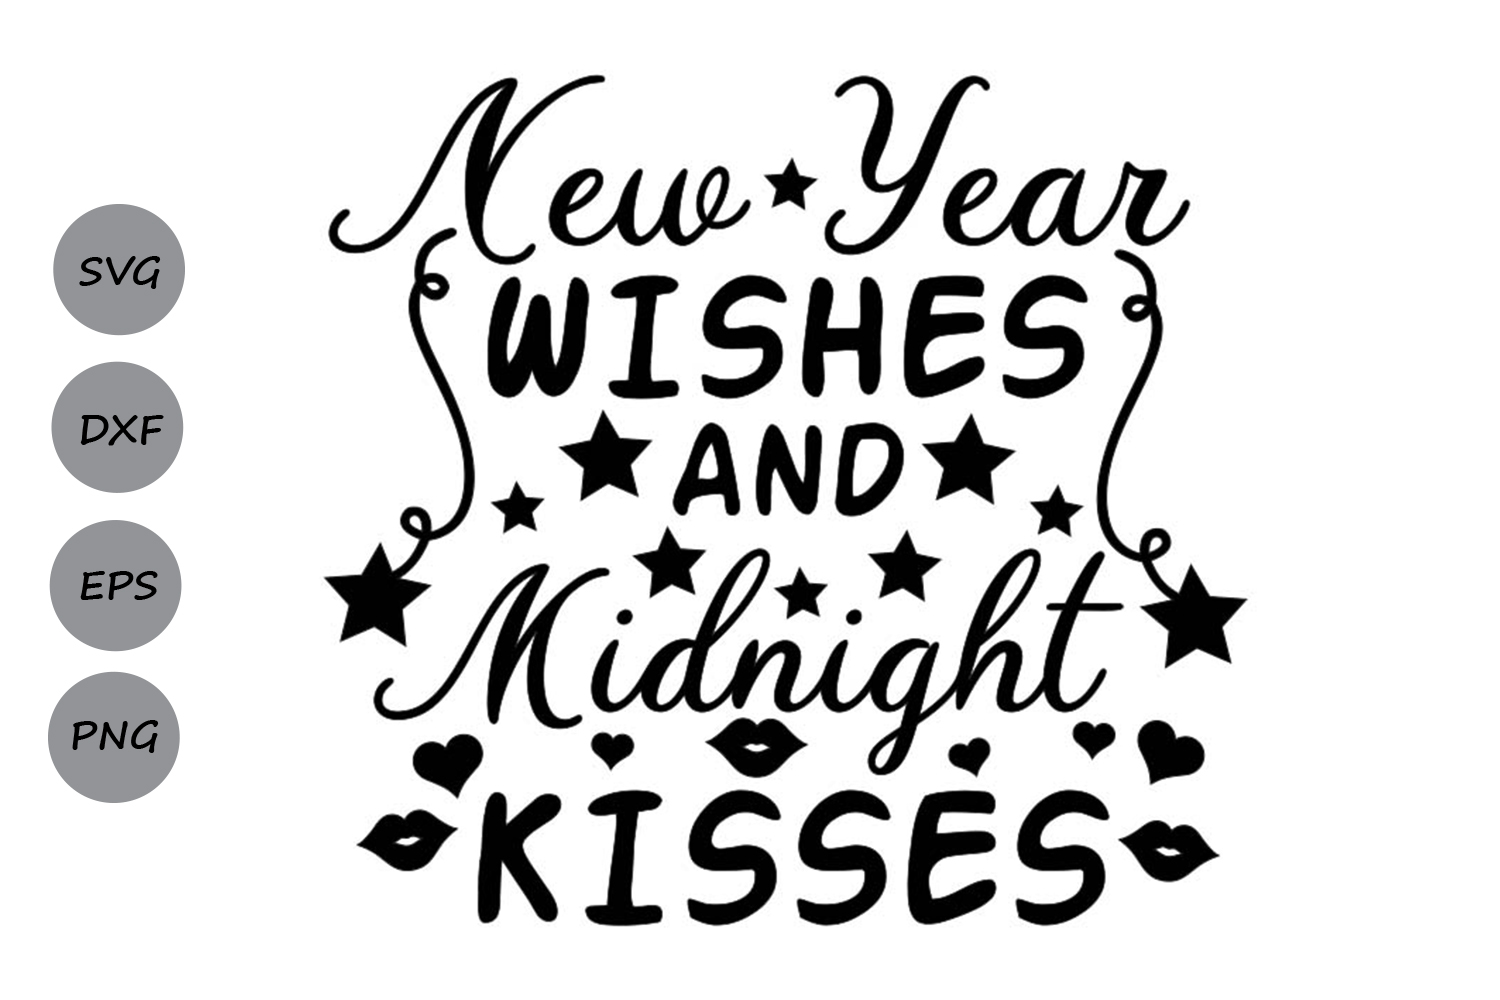 new year wishes and midnight kisses svg, new years svg. example image 2